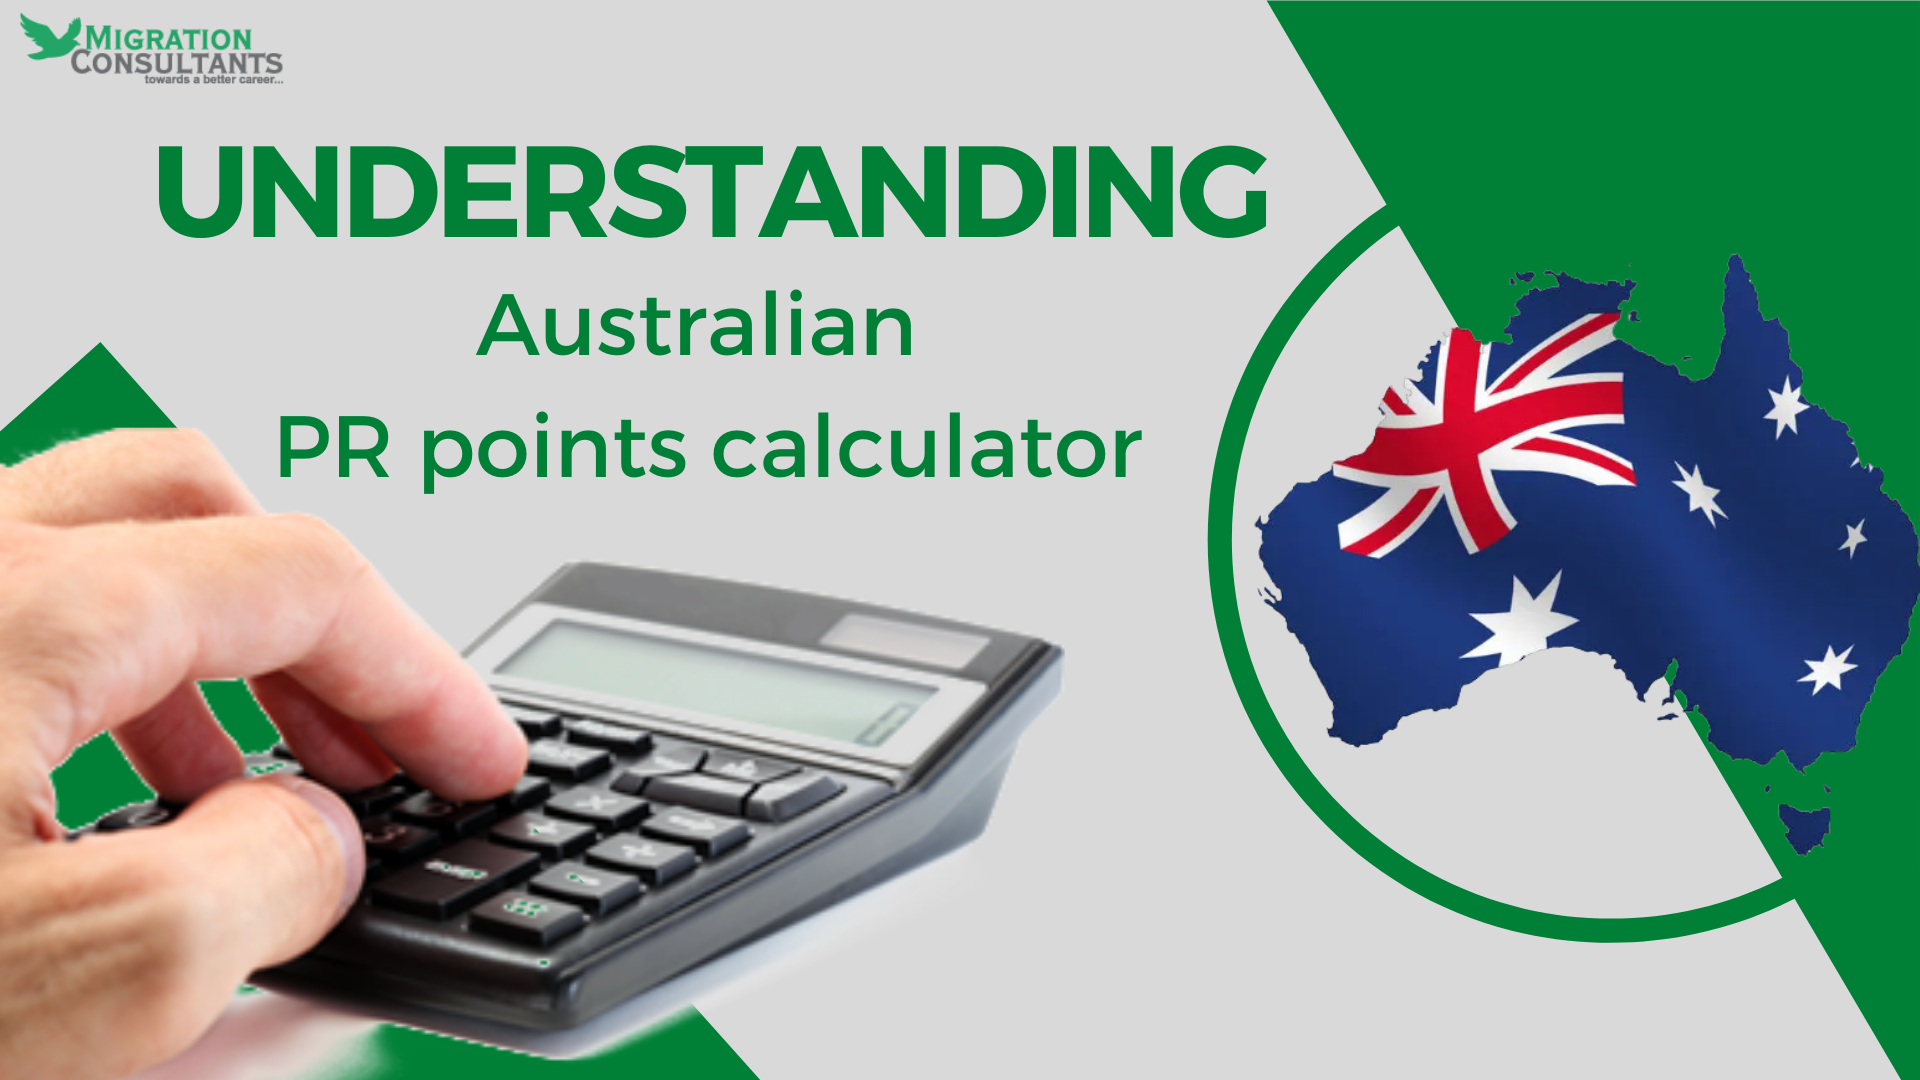 How does the Australian PR points calculator work?